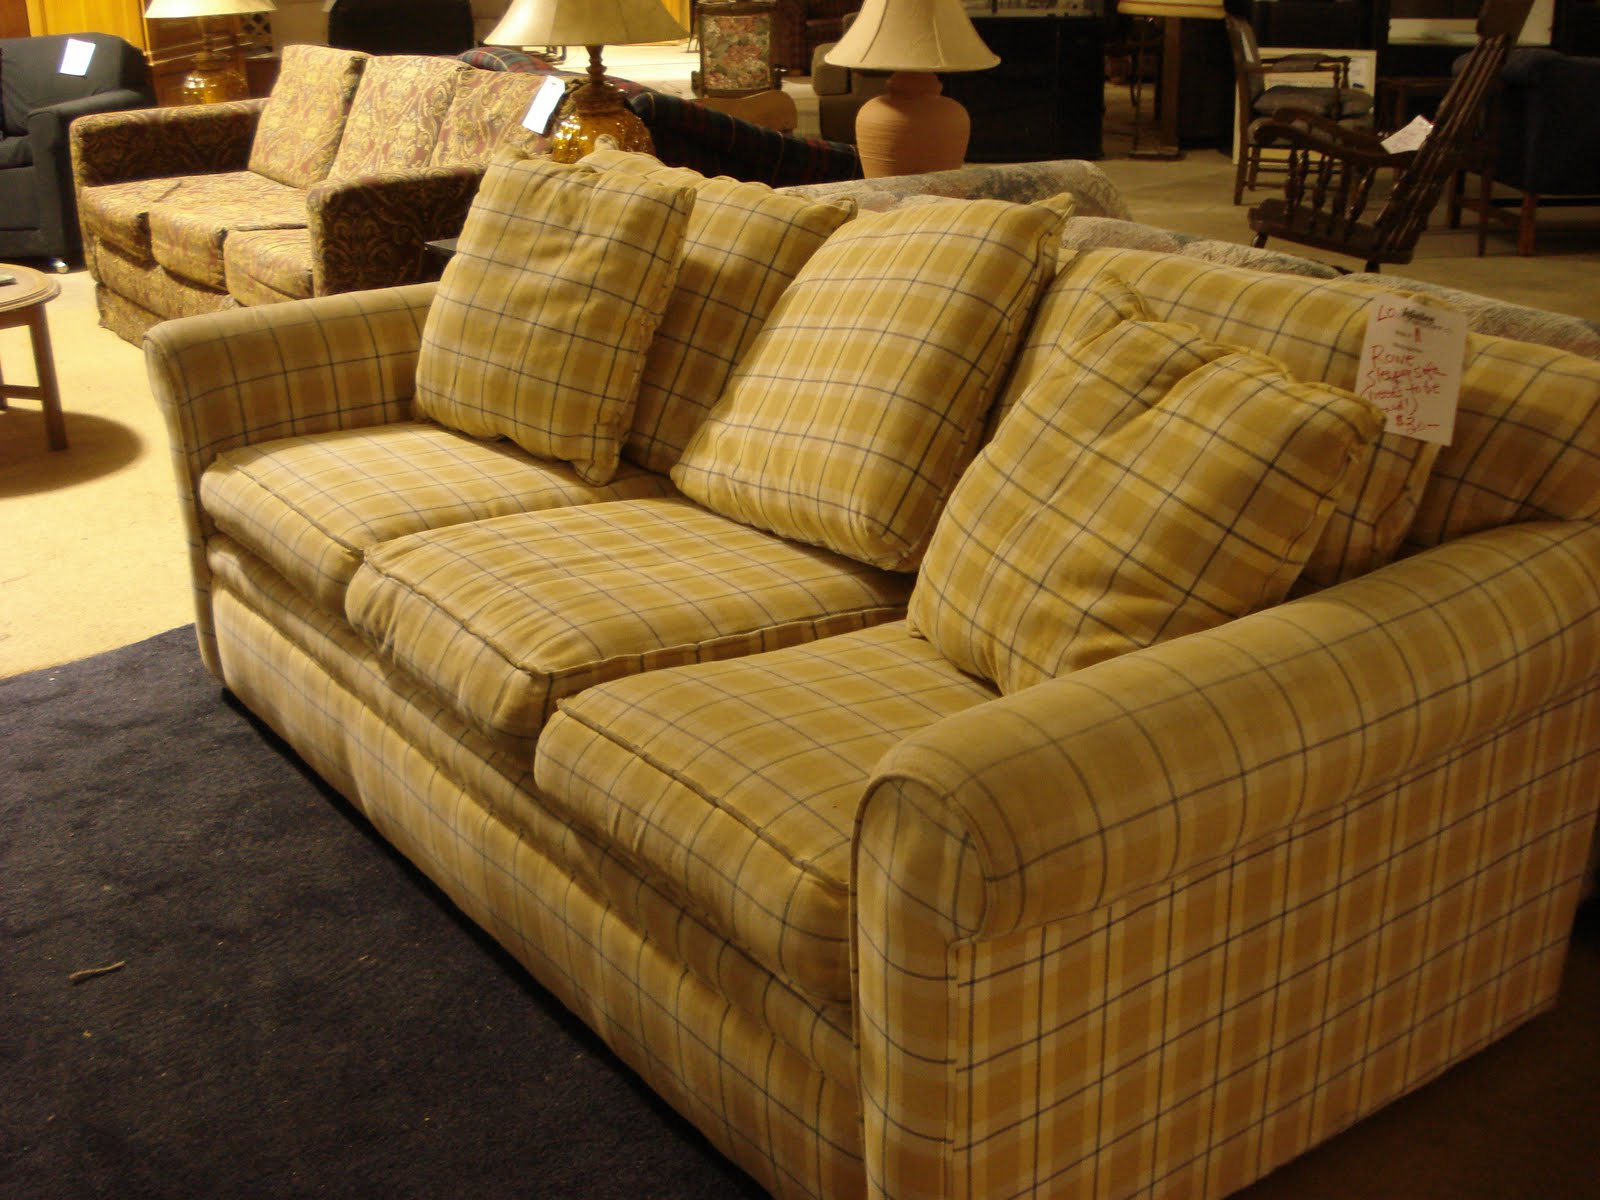 No Preparation Needed In Order To Find Amazing Furniture At Ashley Furniture Ashley Furniture